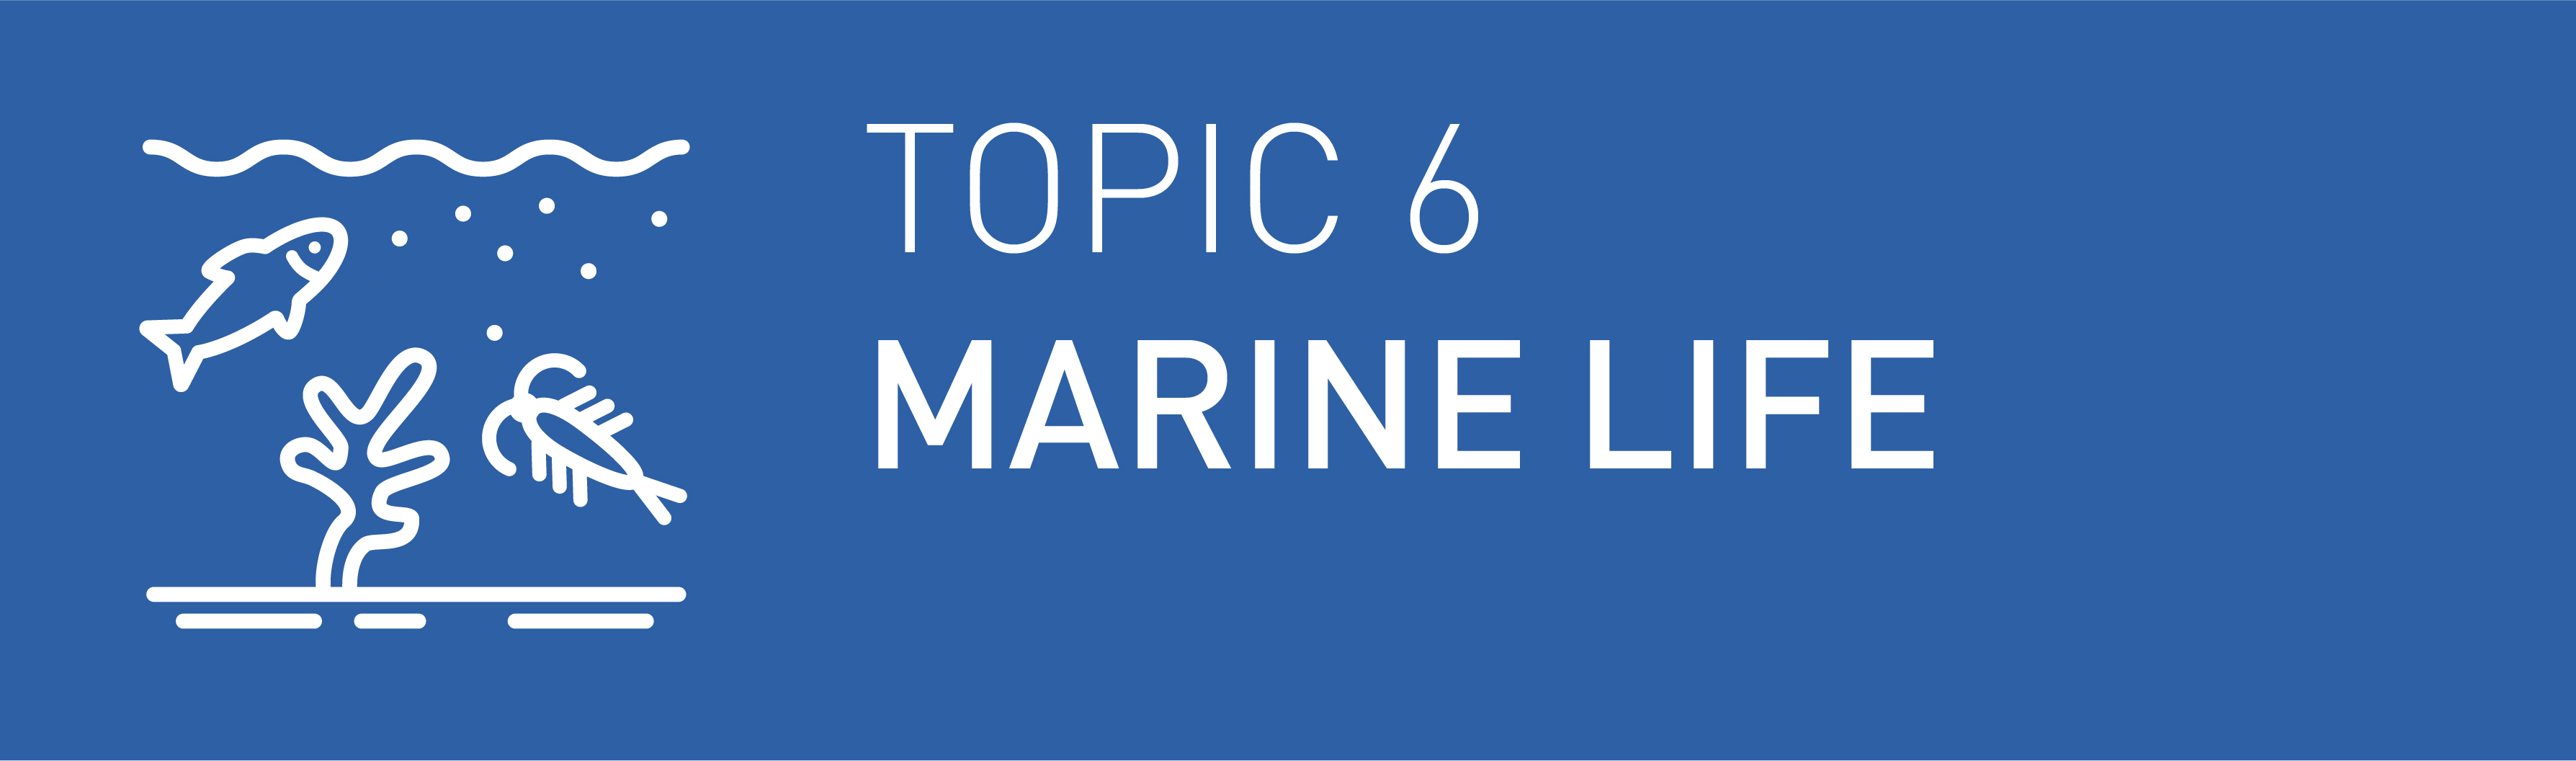 Icon Topic 6 Marine Life